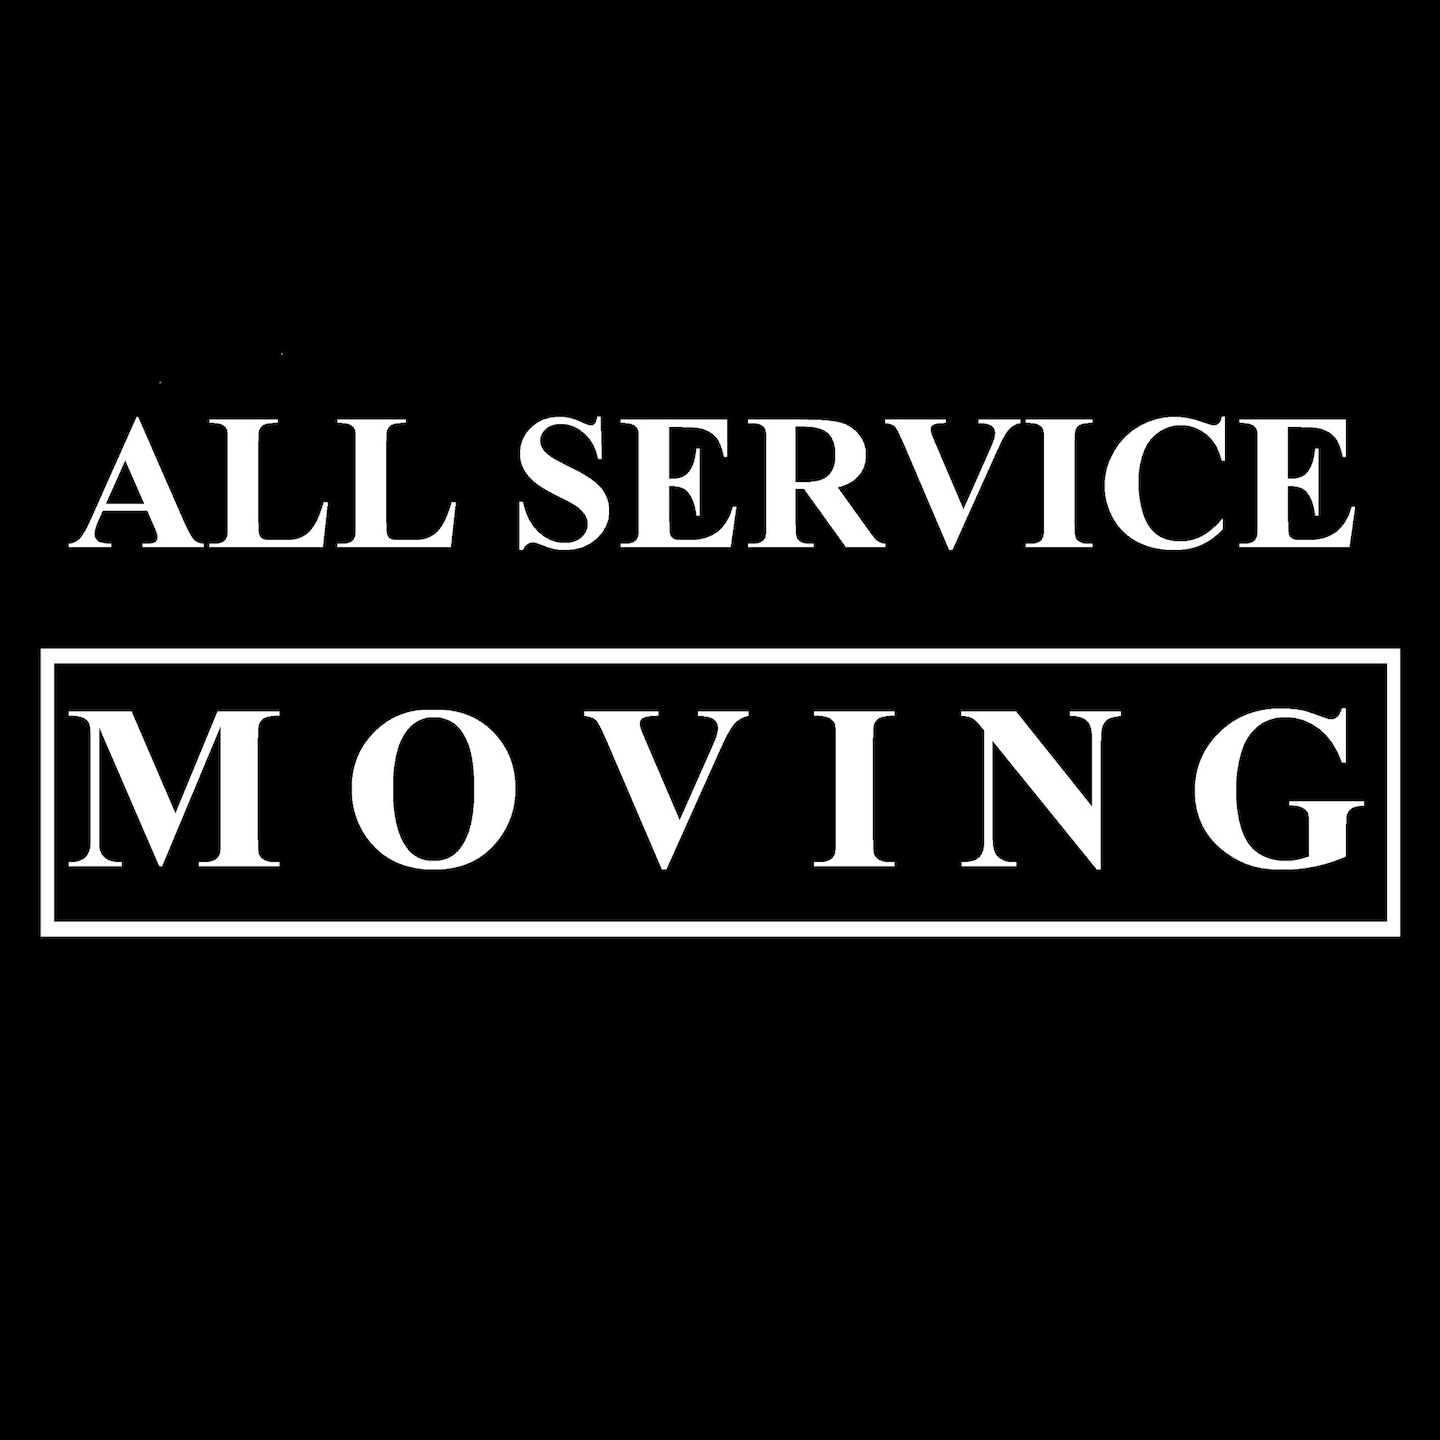 All Service Moving